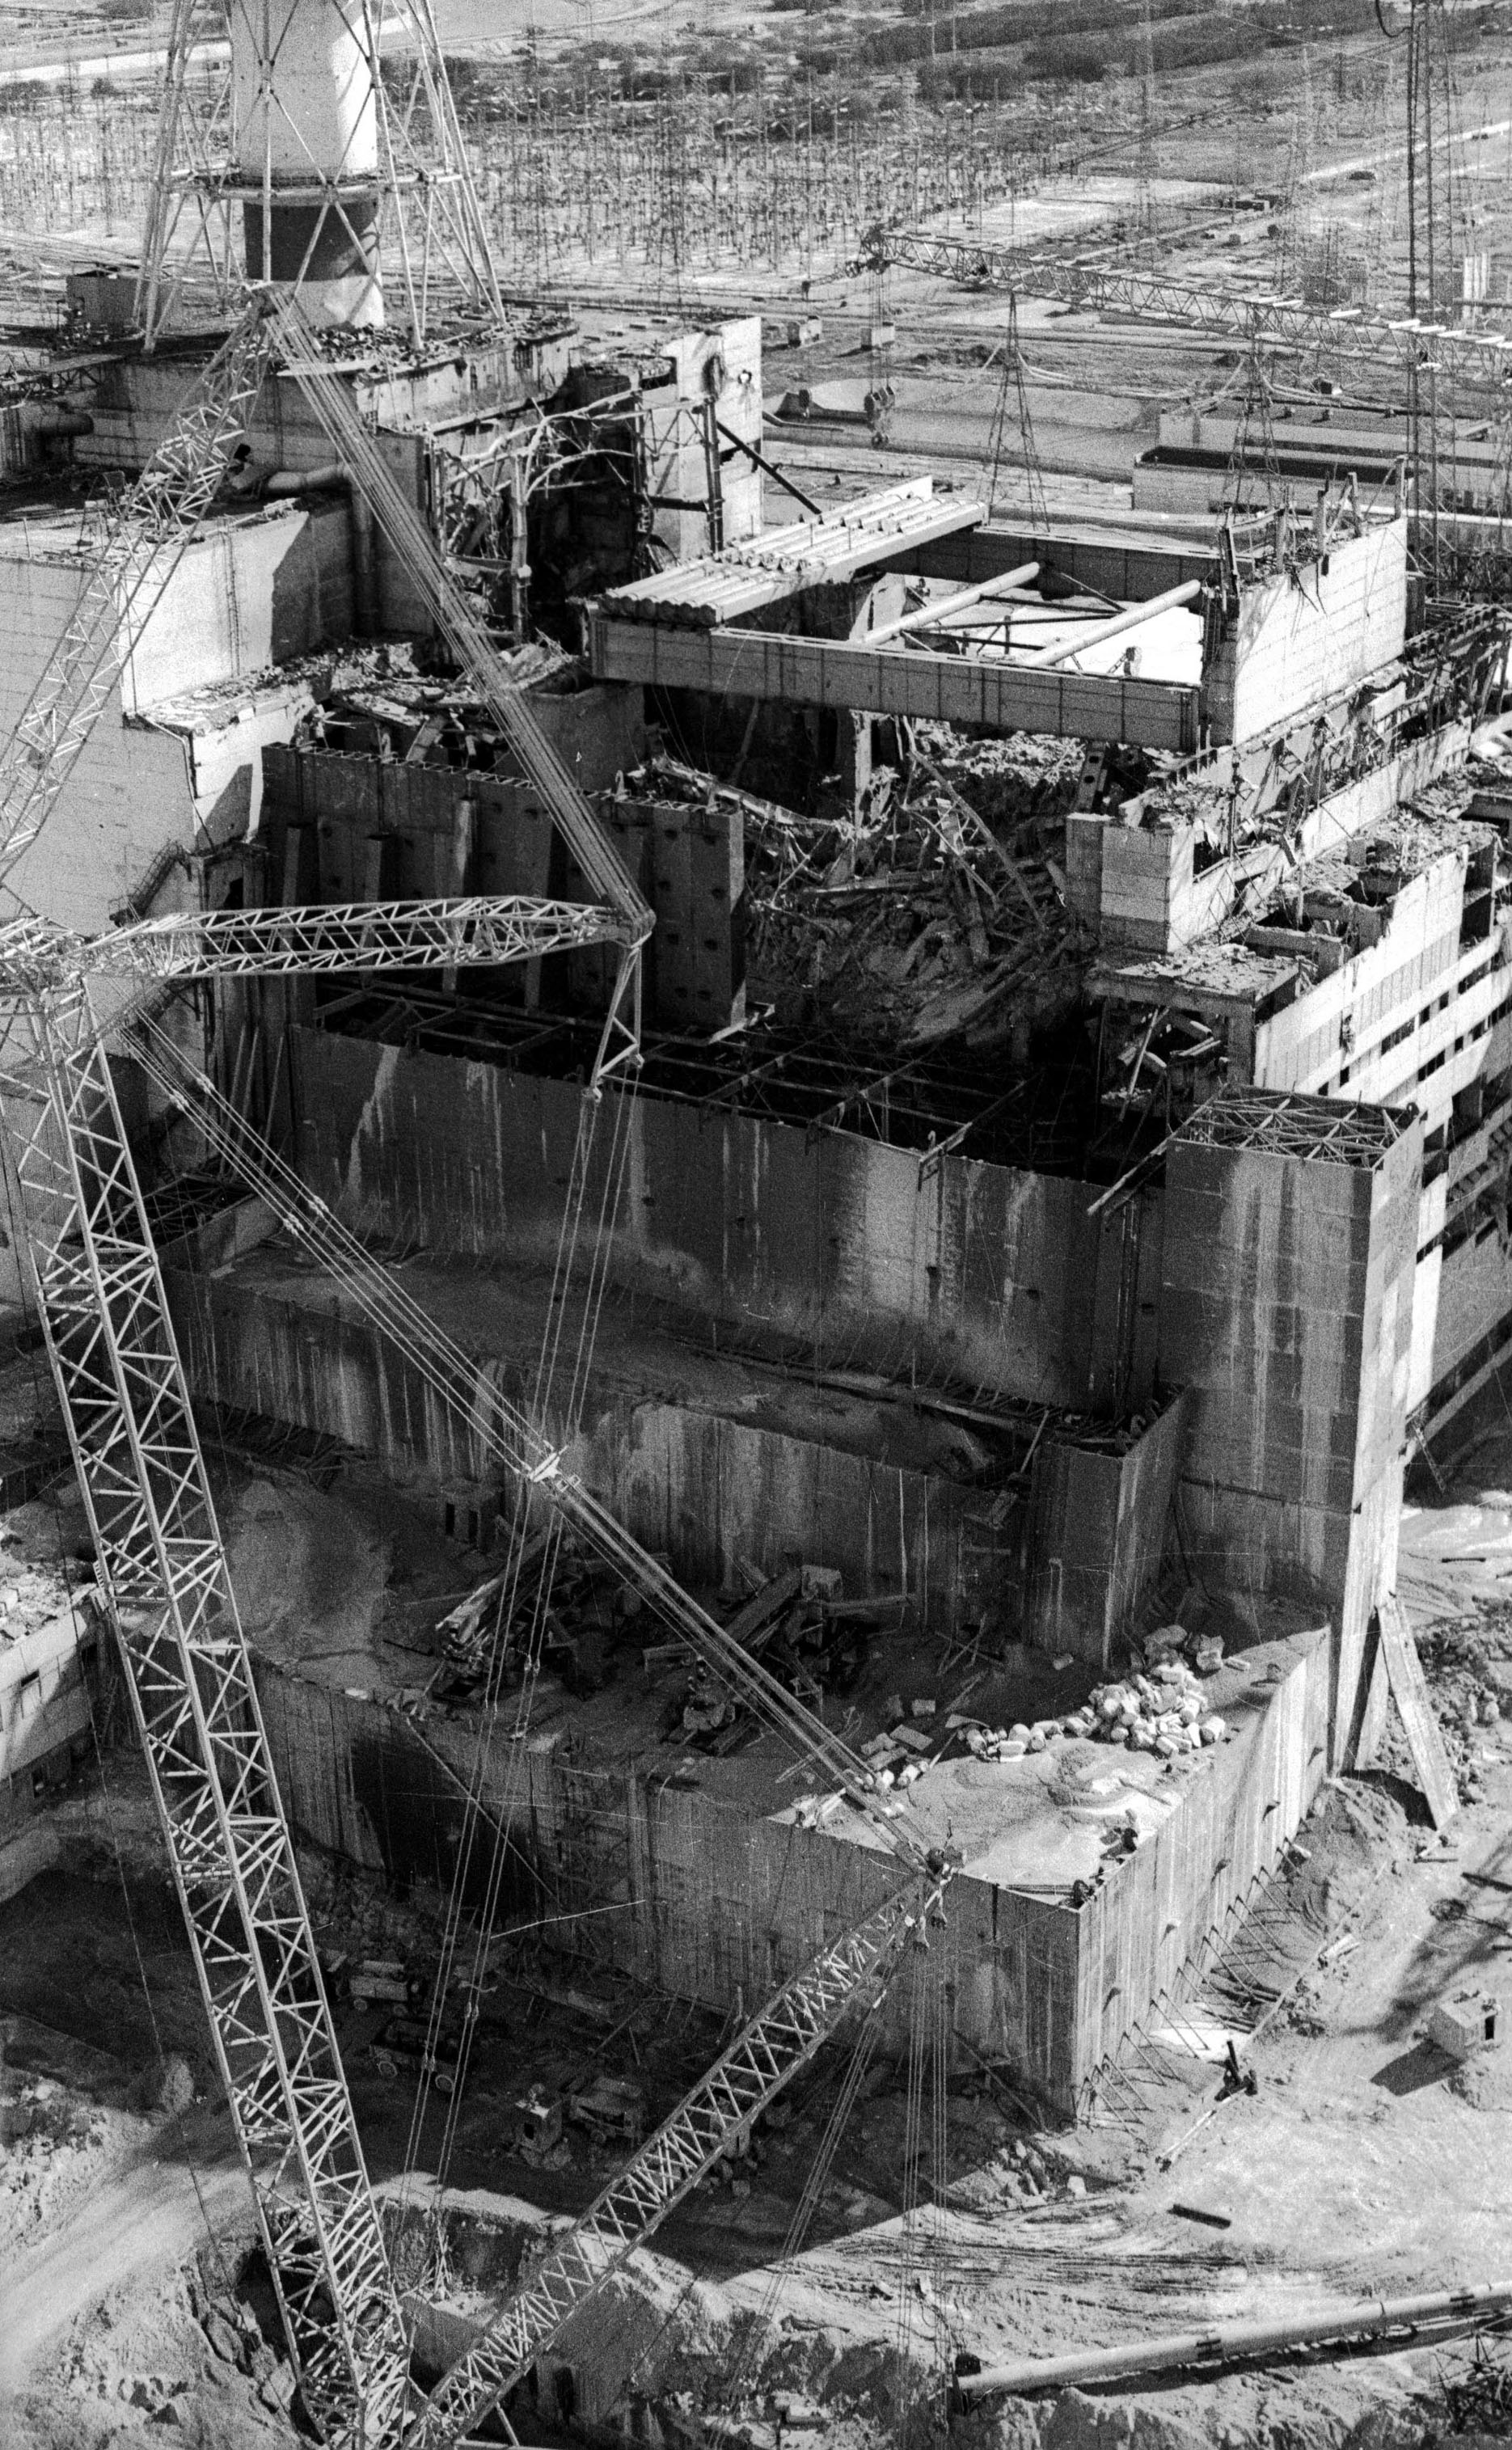 Details of the nuclear accident in chernobyl in 1986